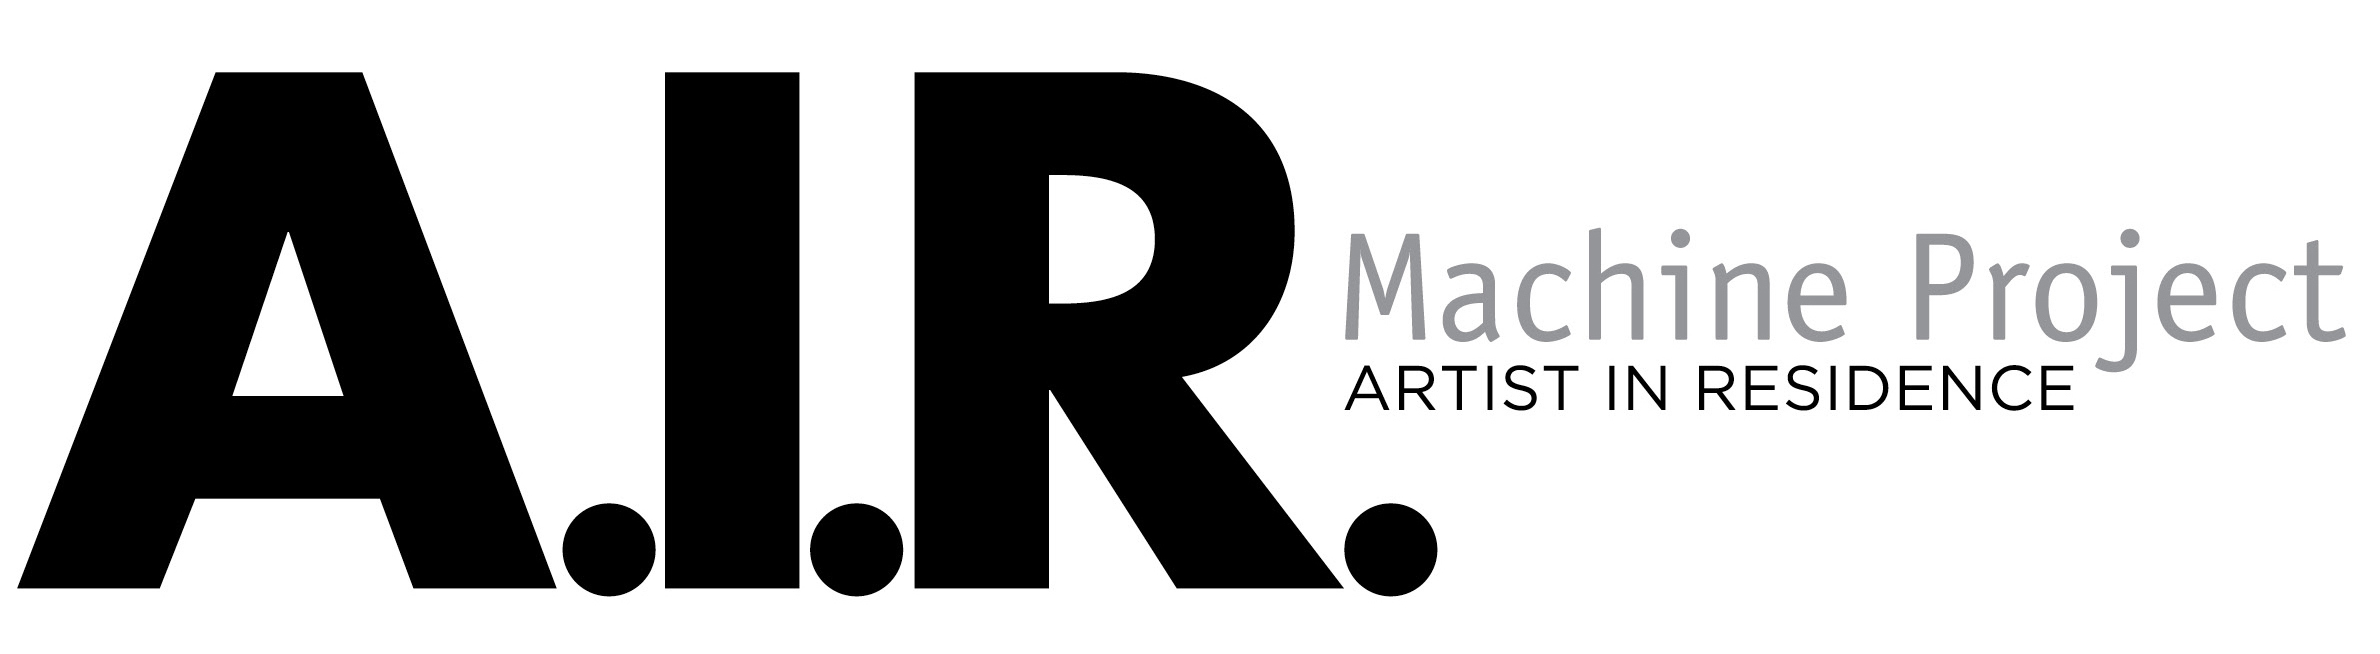 Machine Project Artist In Residence logo